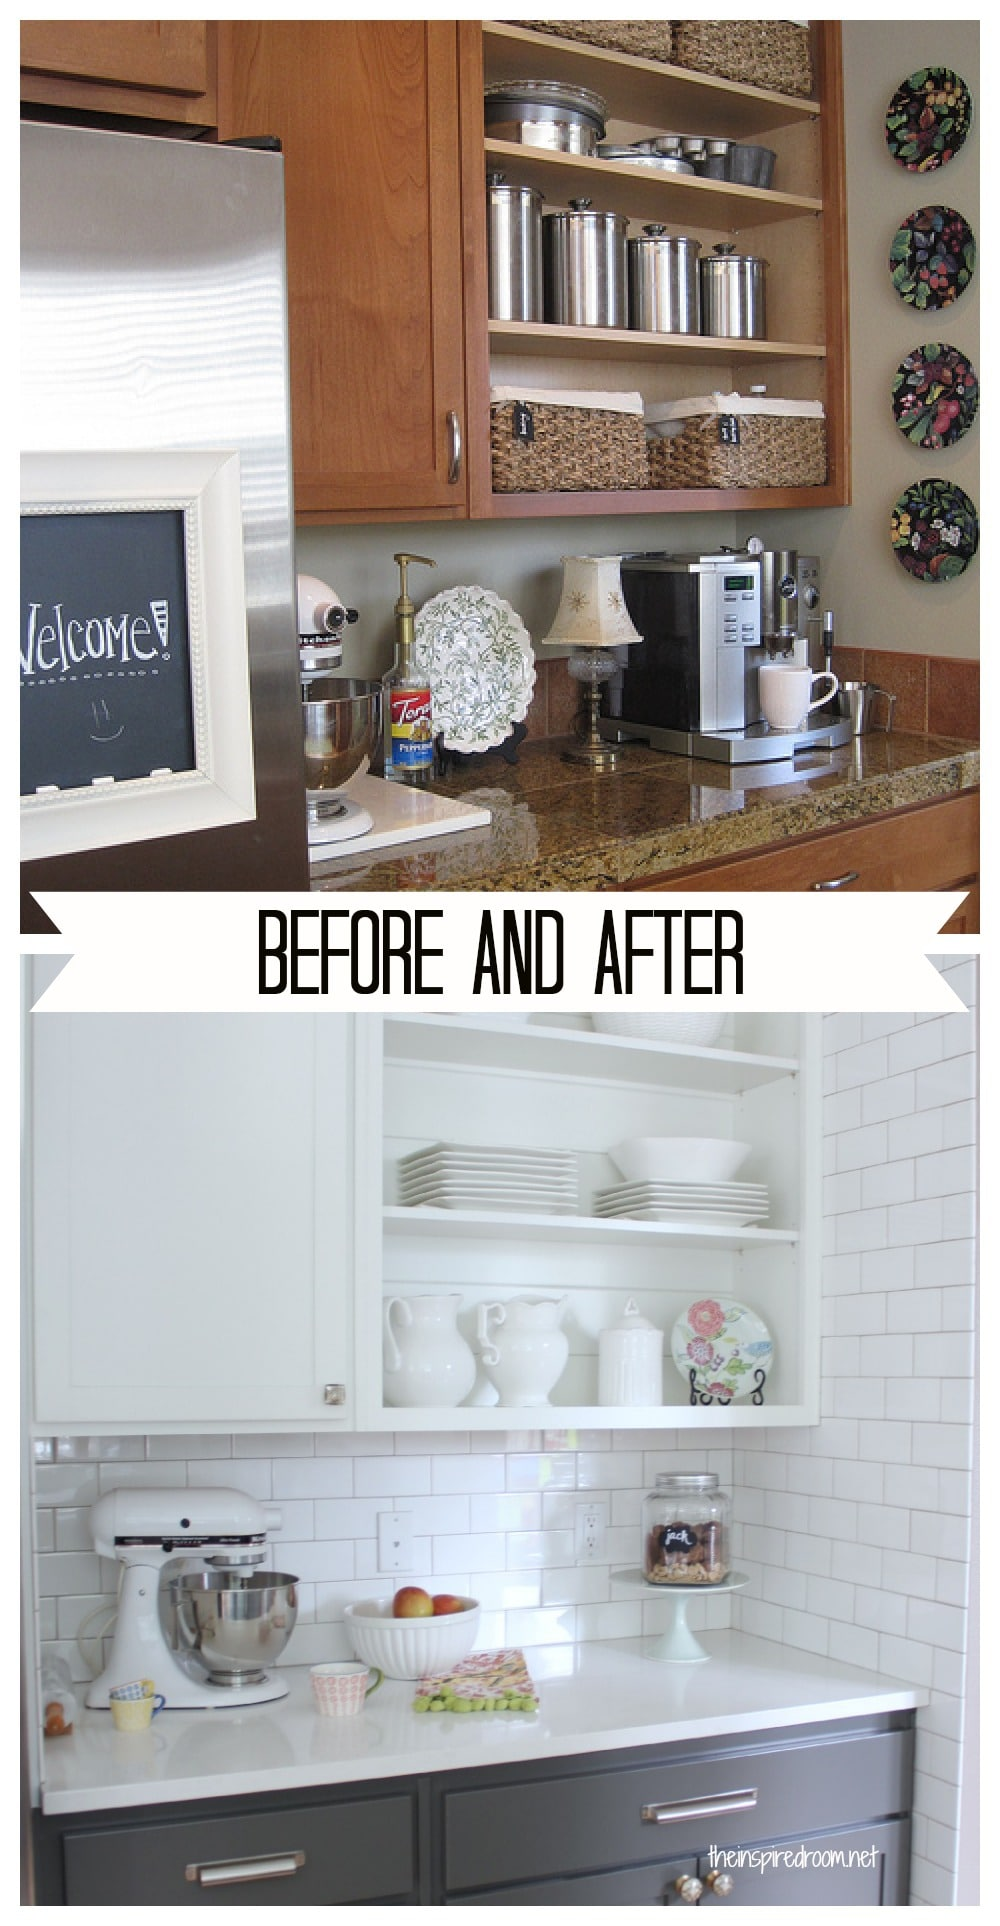 Crown molding on kitchen cabinets before and after - Kitchen Cabinet Colors Before After